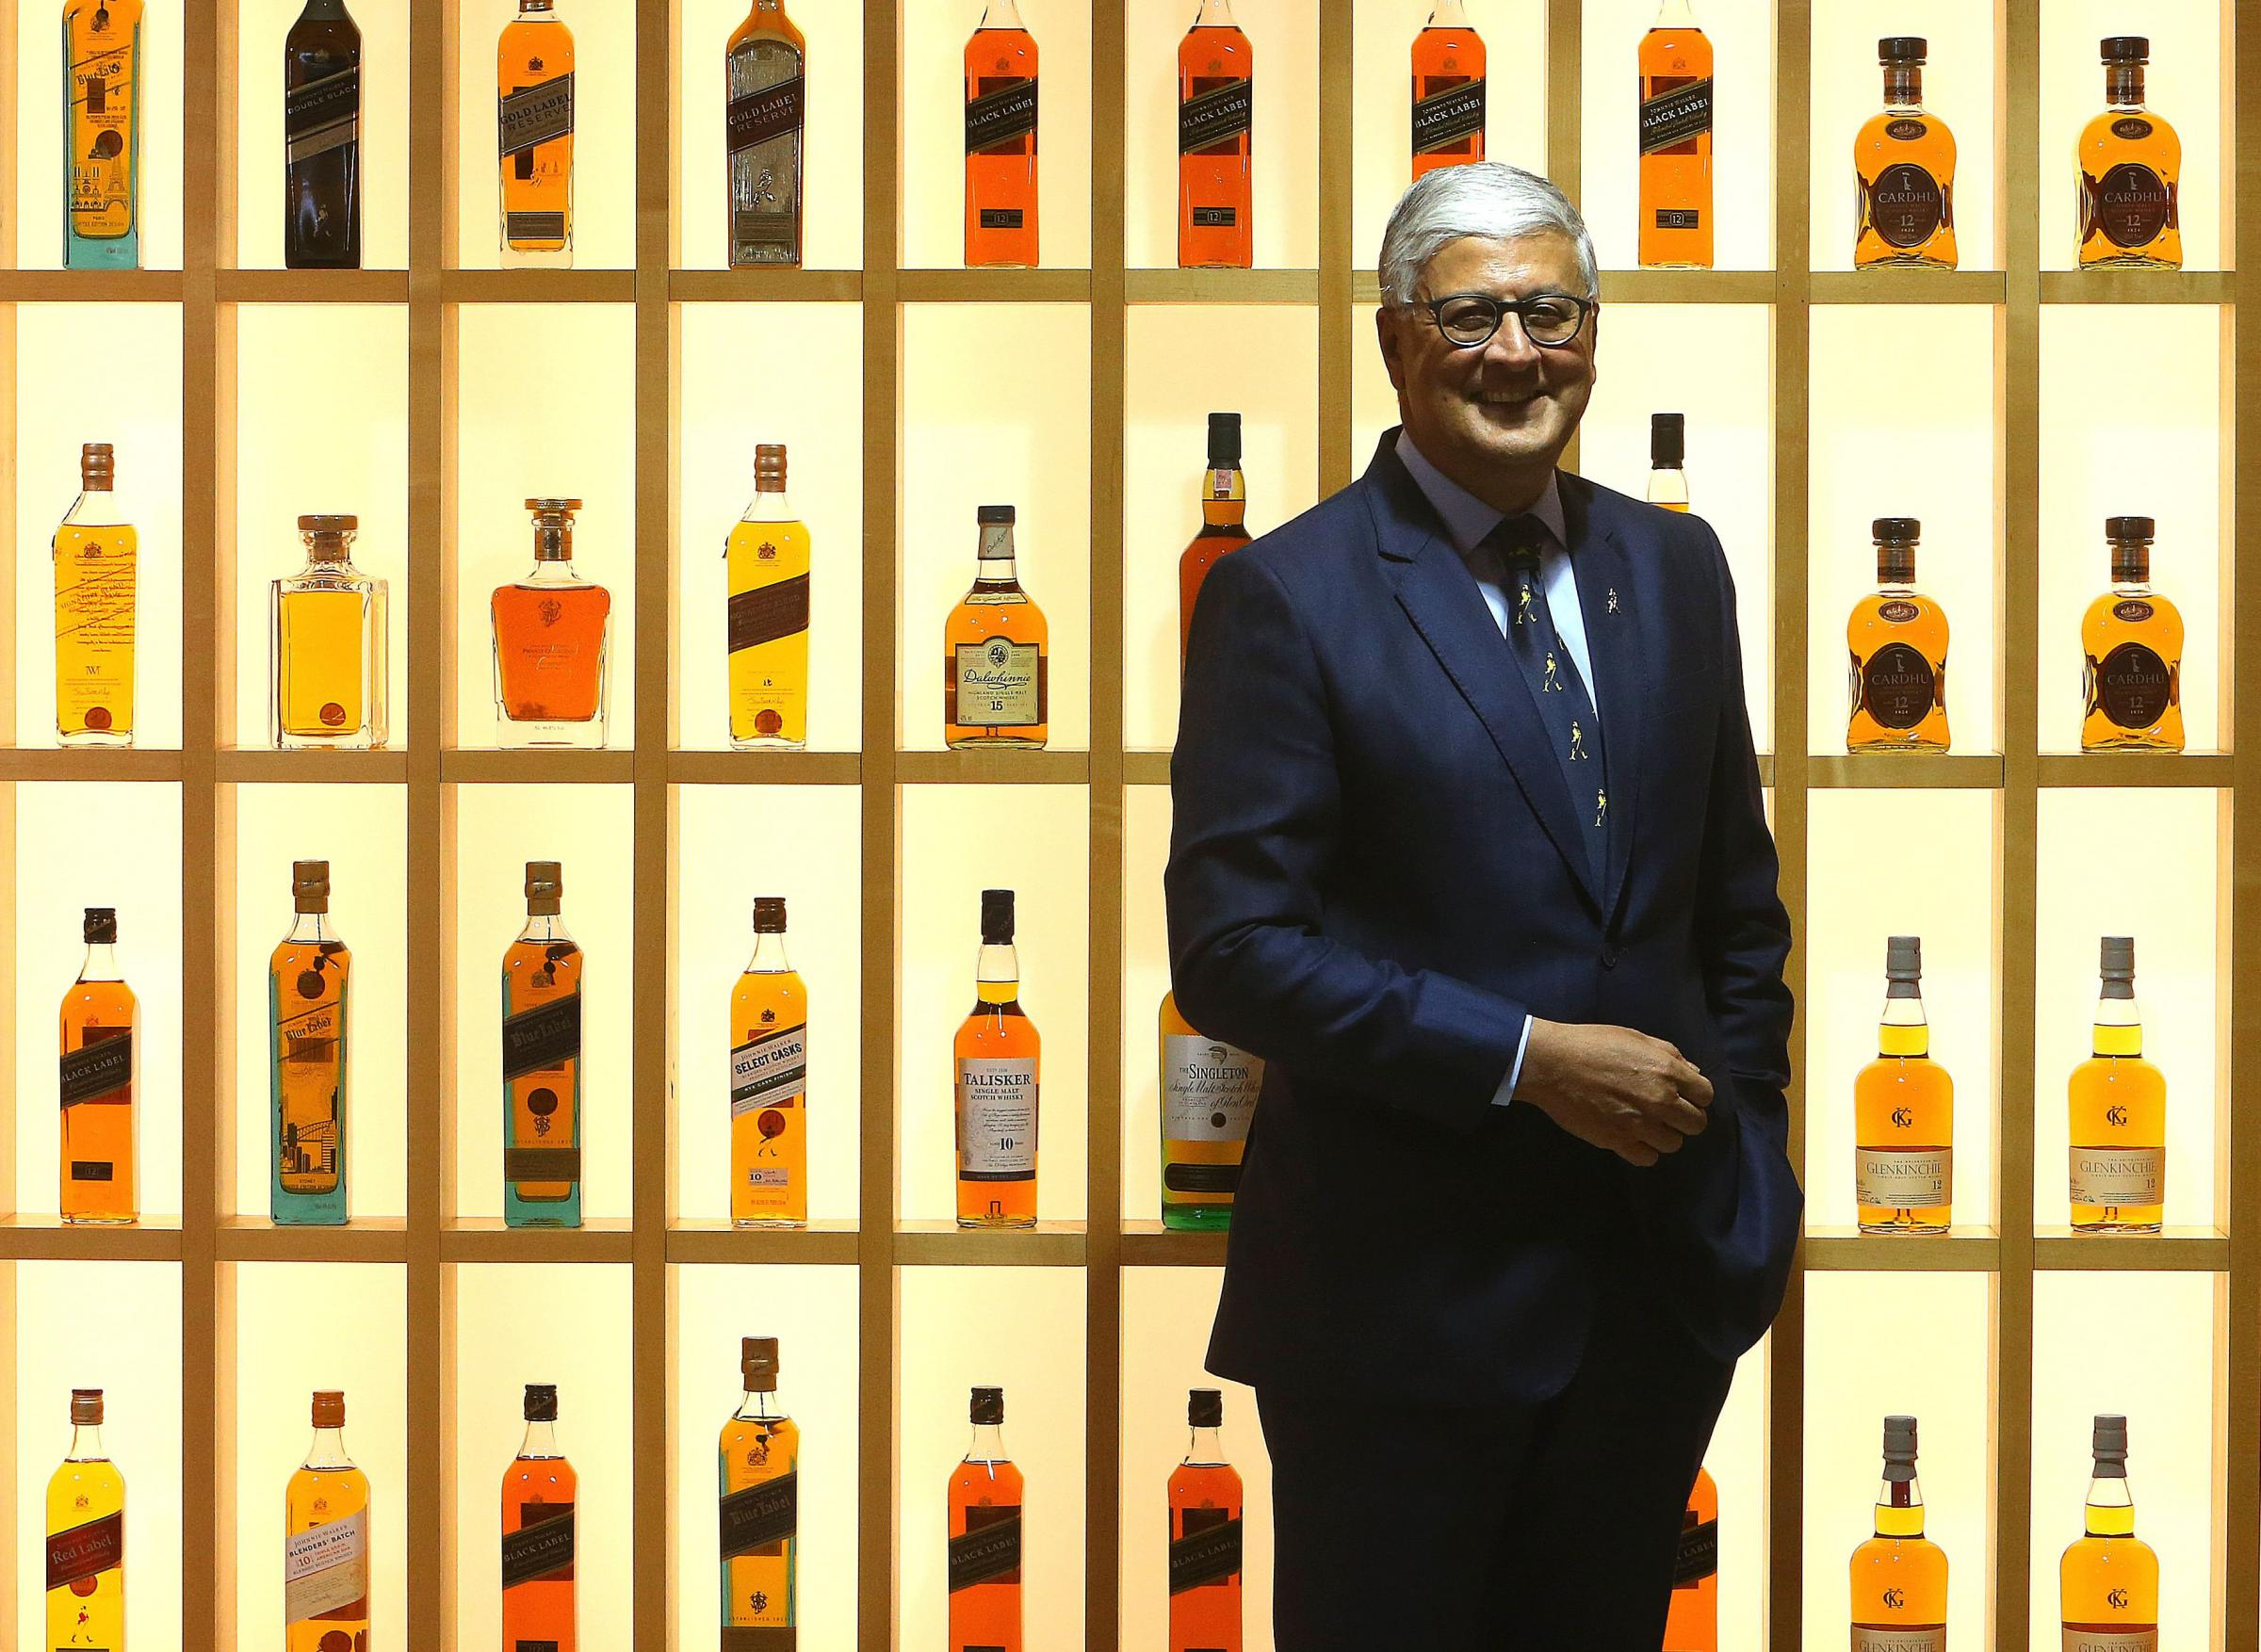 Ivan Menezes, chief executive of Diageo